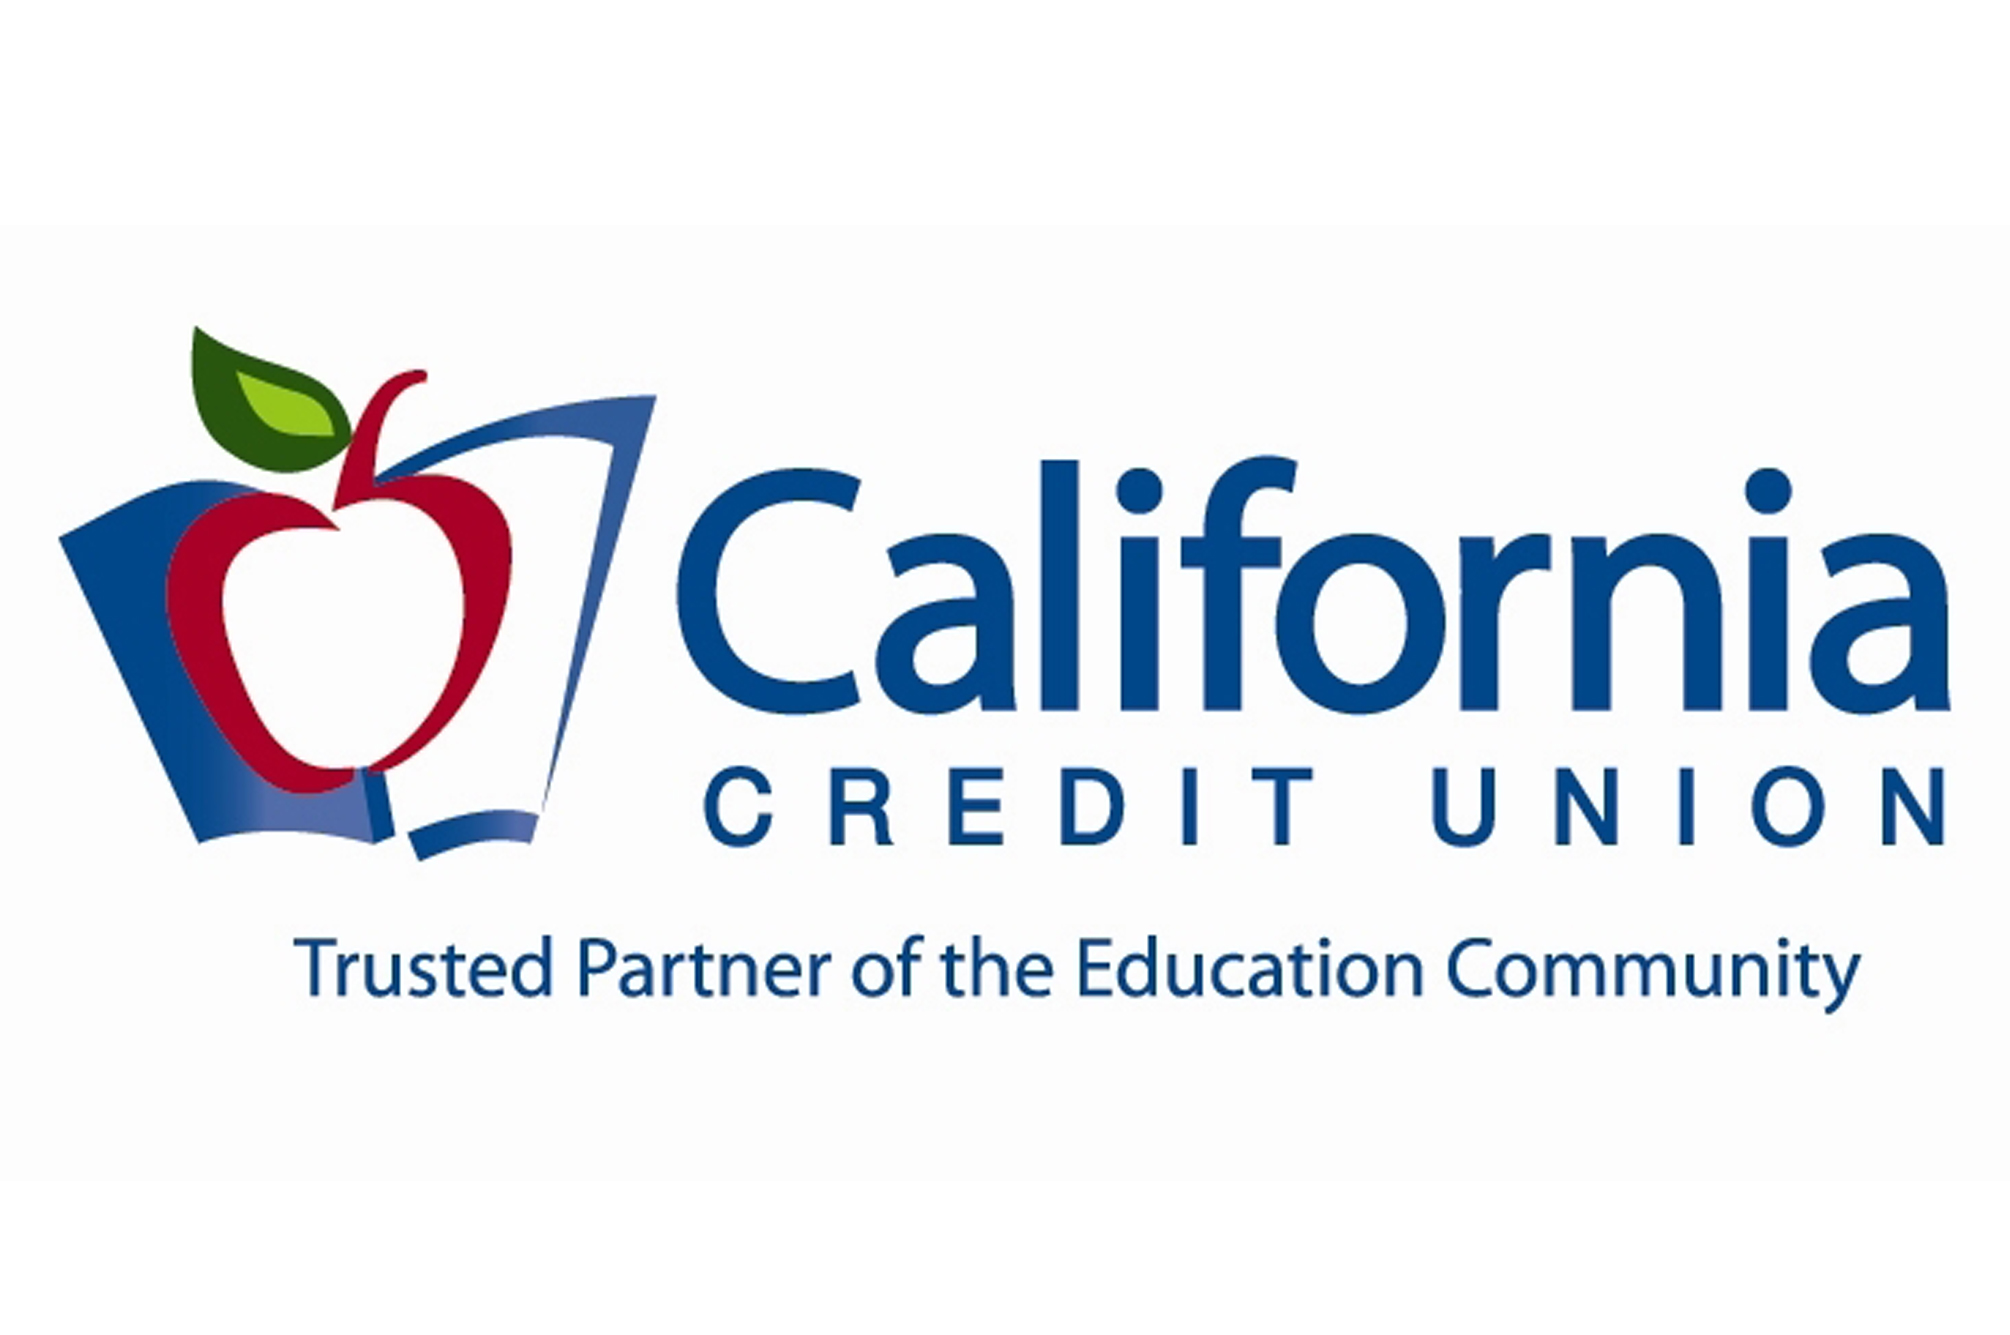 California-Credit-Union.jpg